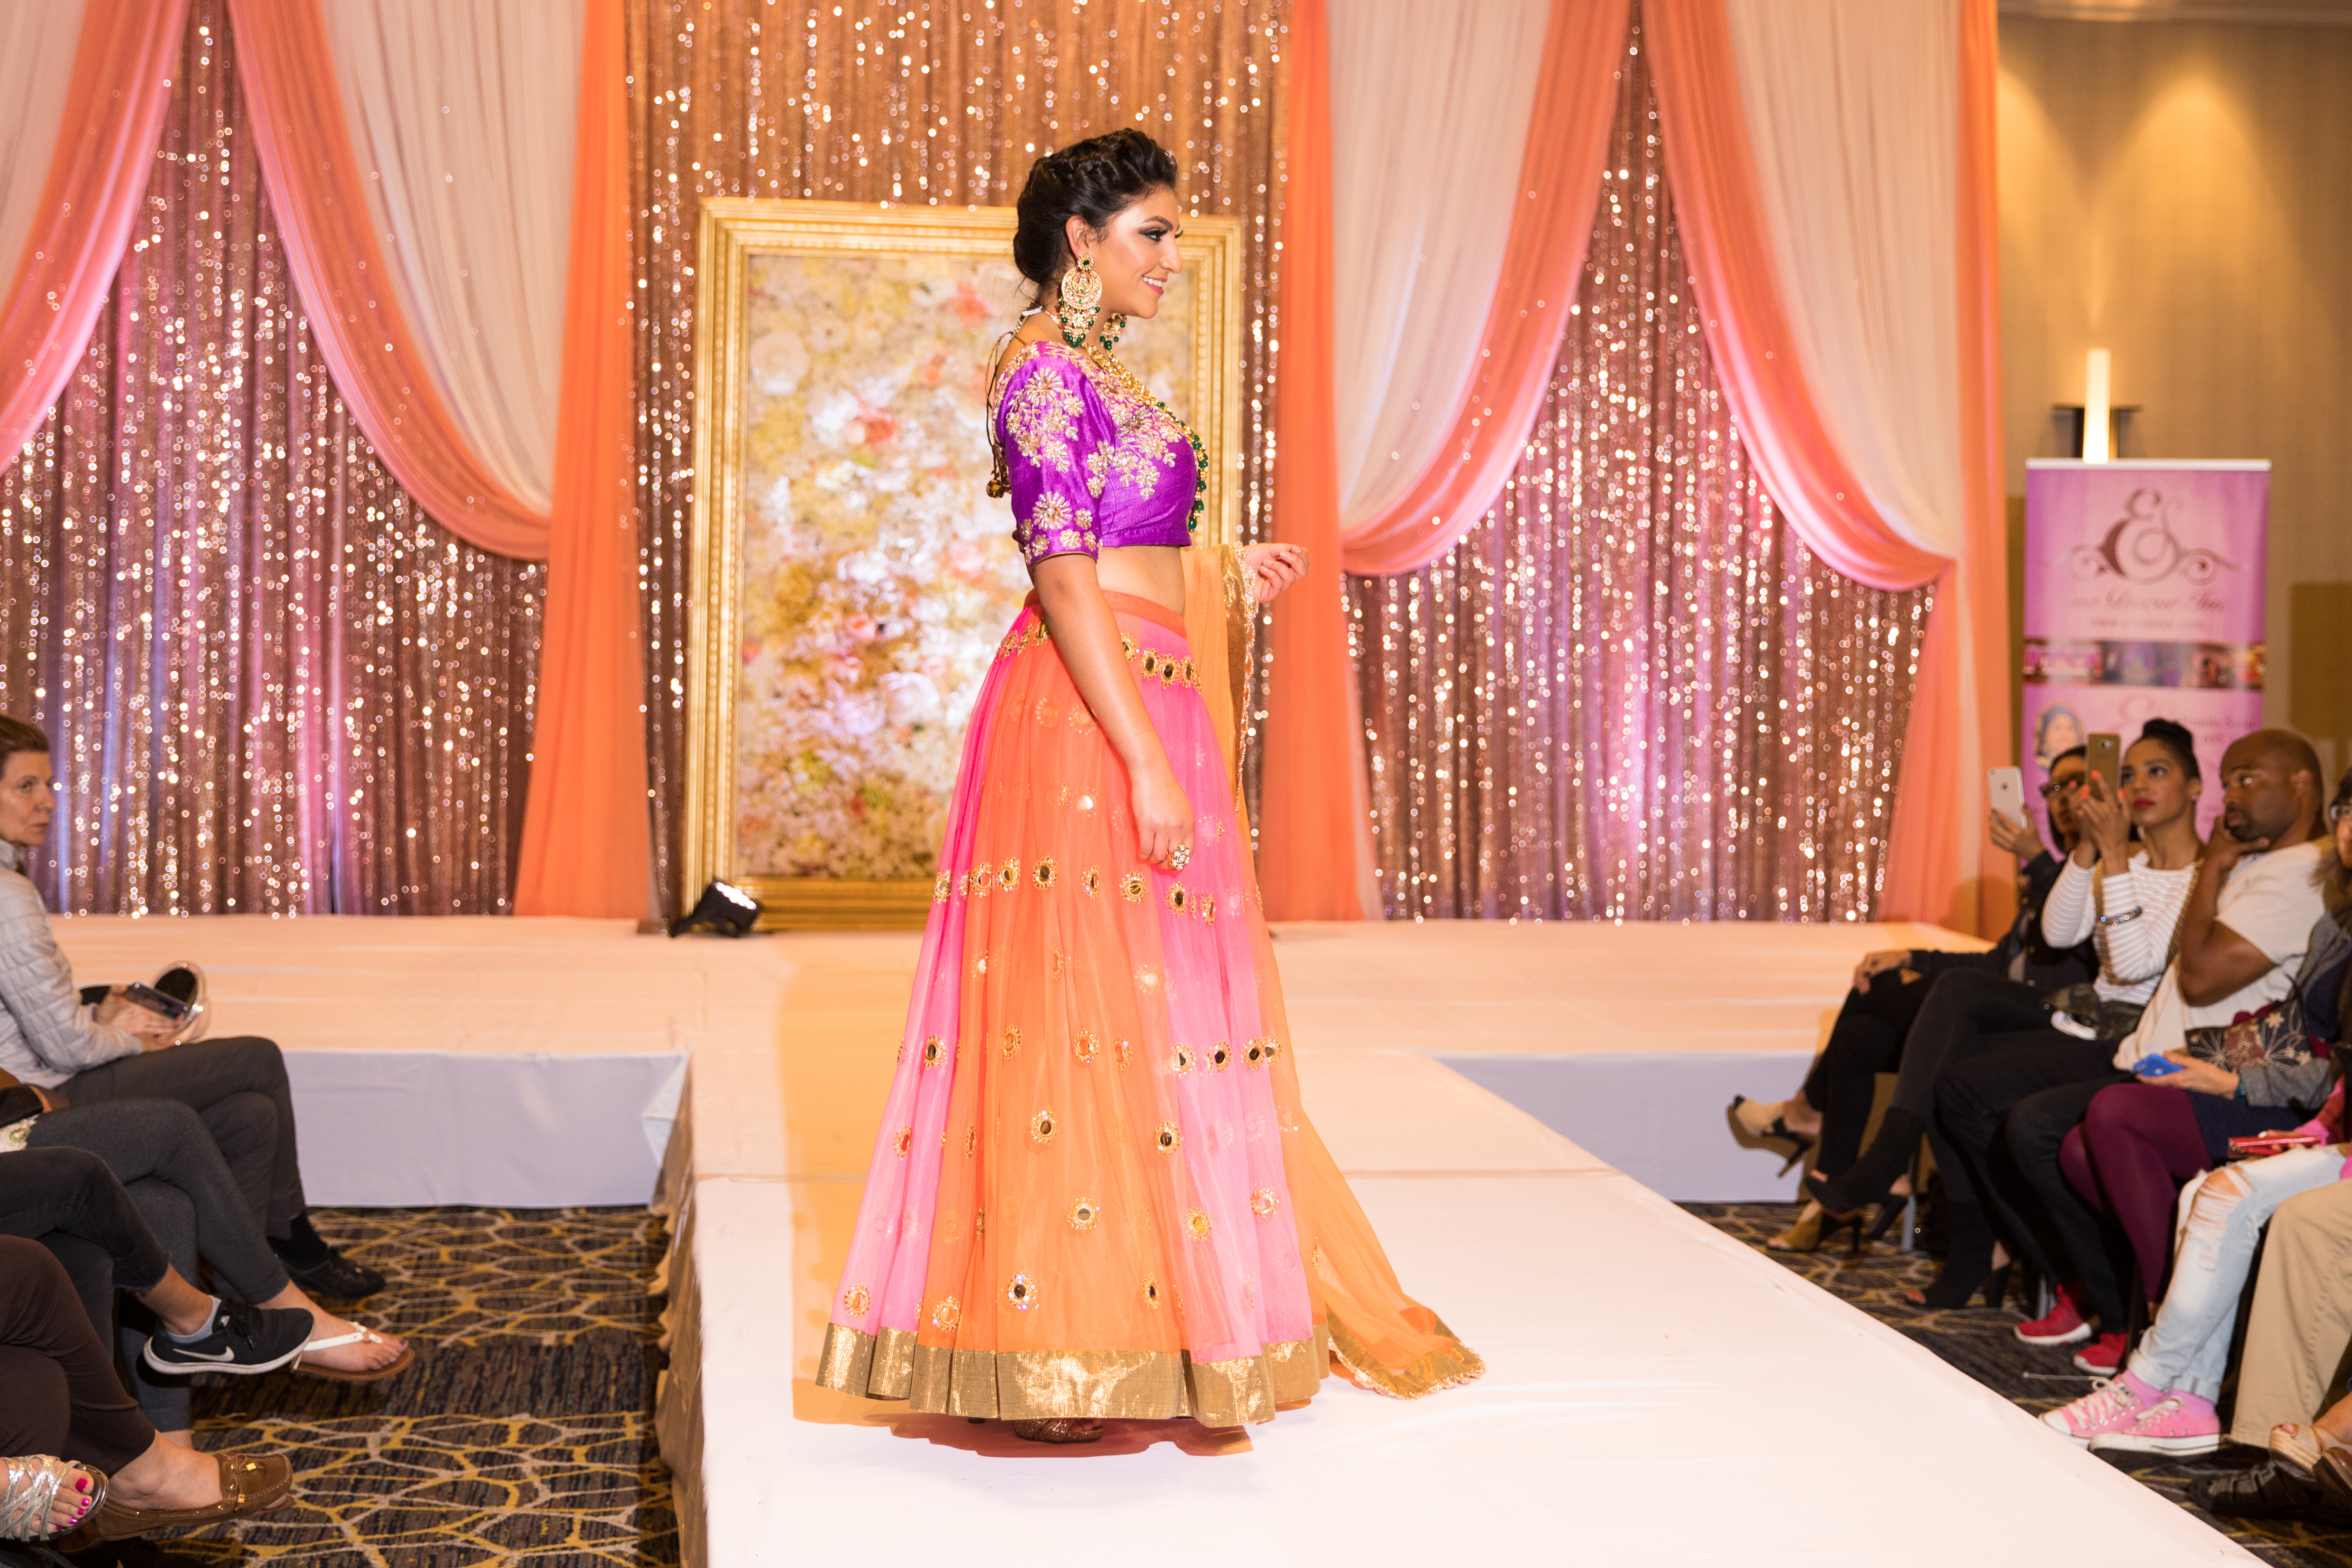 sf-bayarea-indian-wedding-bridal-show-photographer-edcarlogarcia-B35A1924